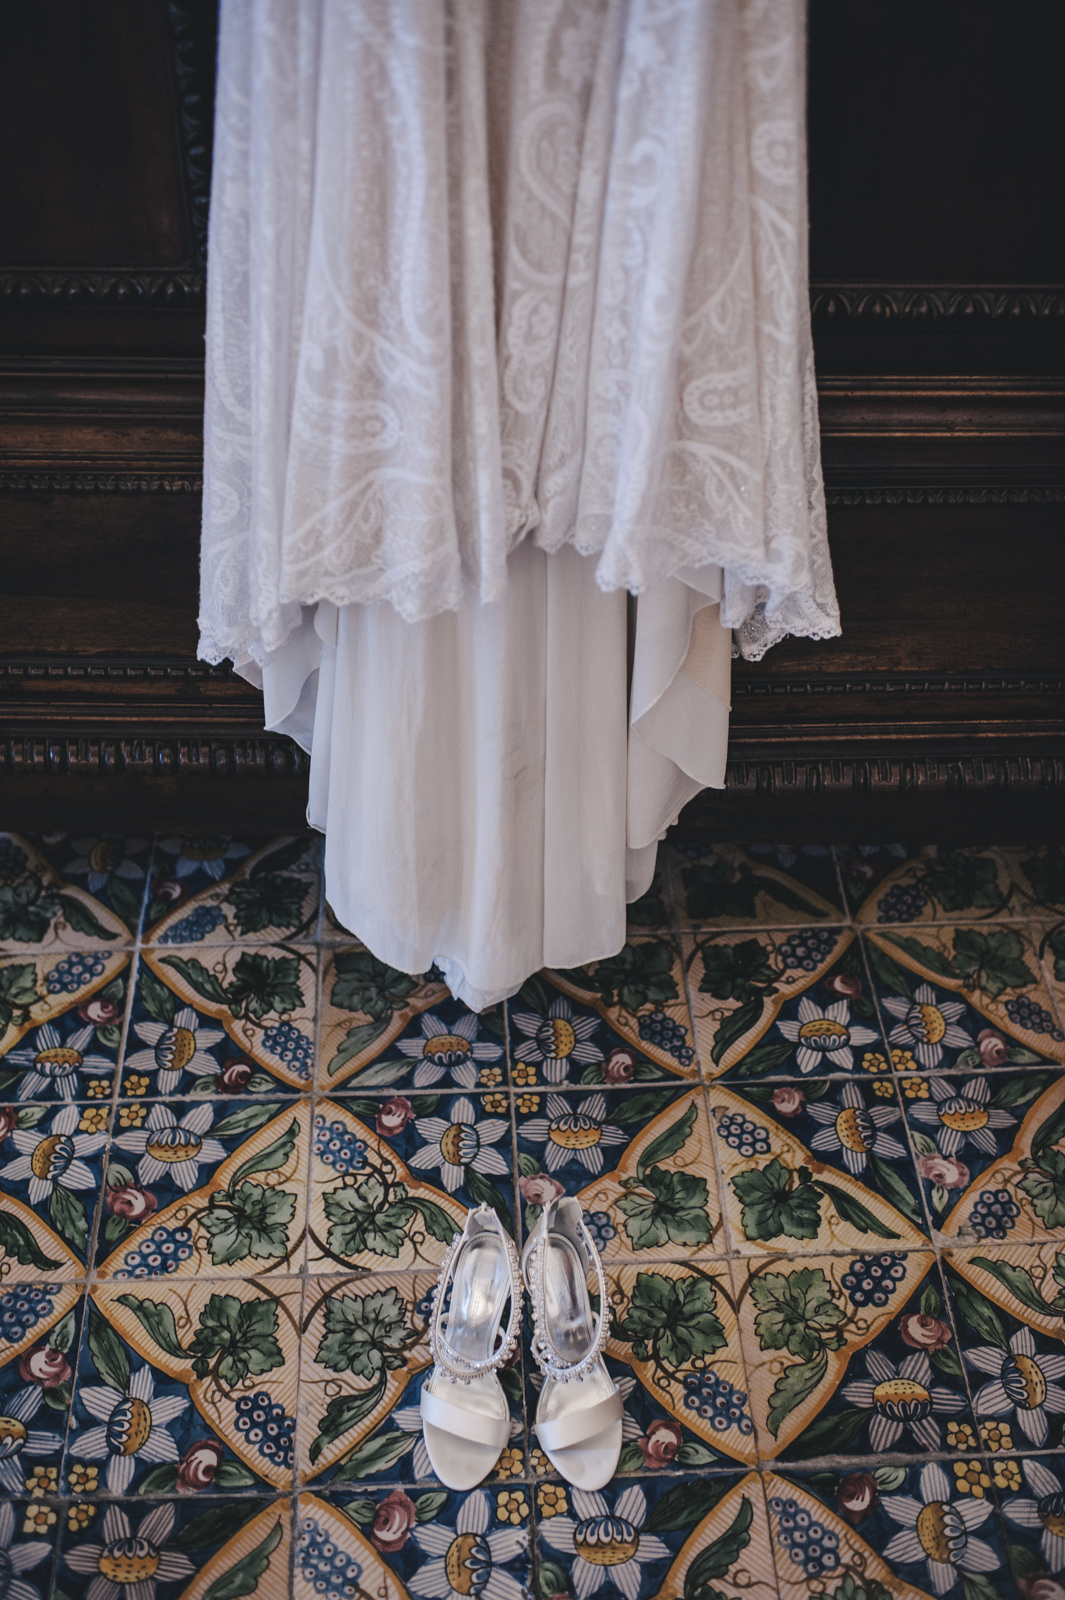 details of the bride dress and shoes on a maiolica floor